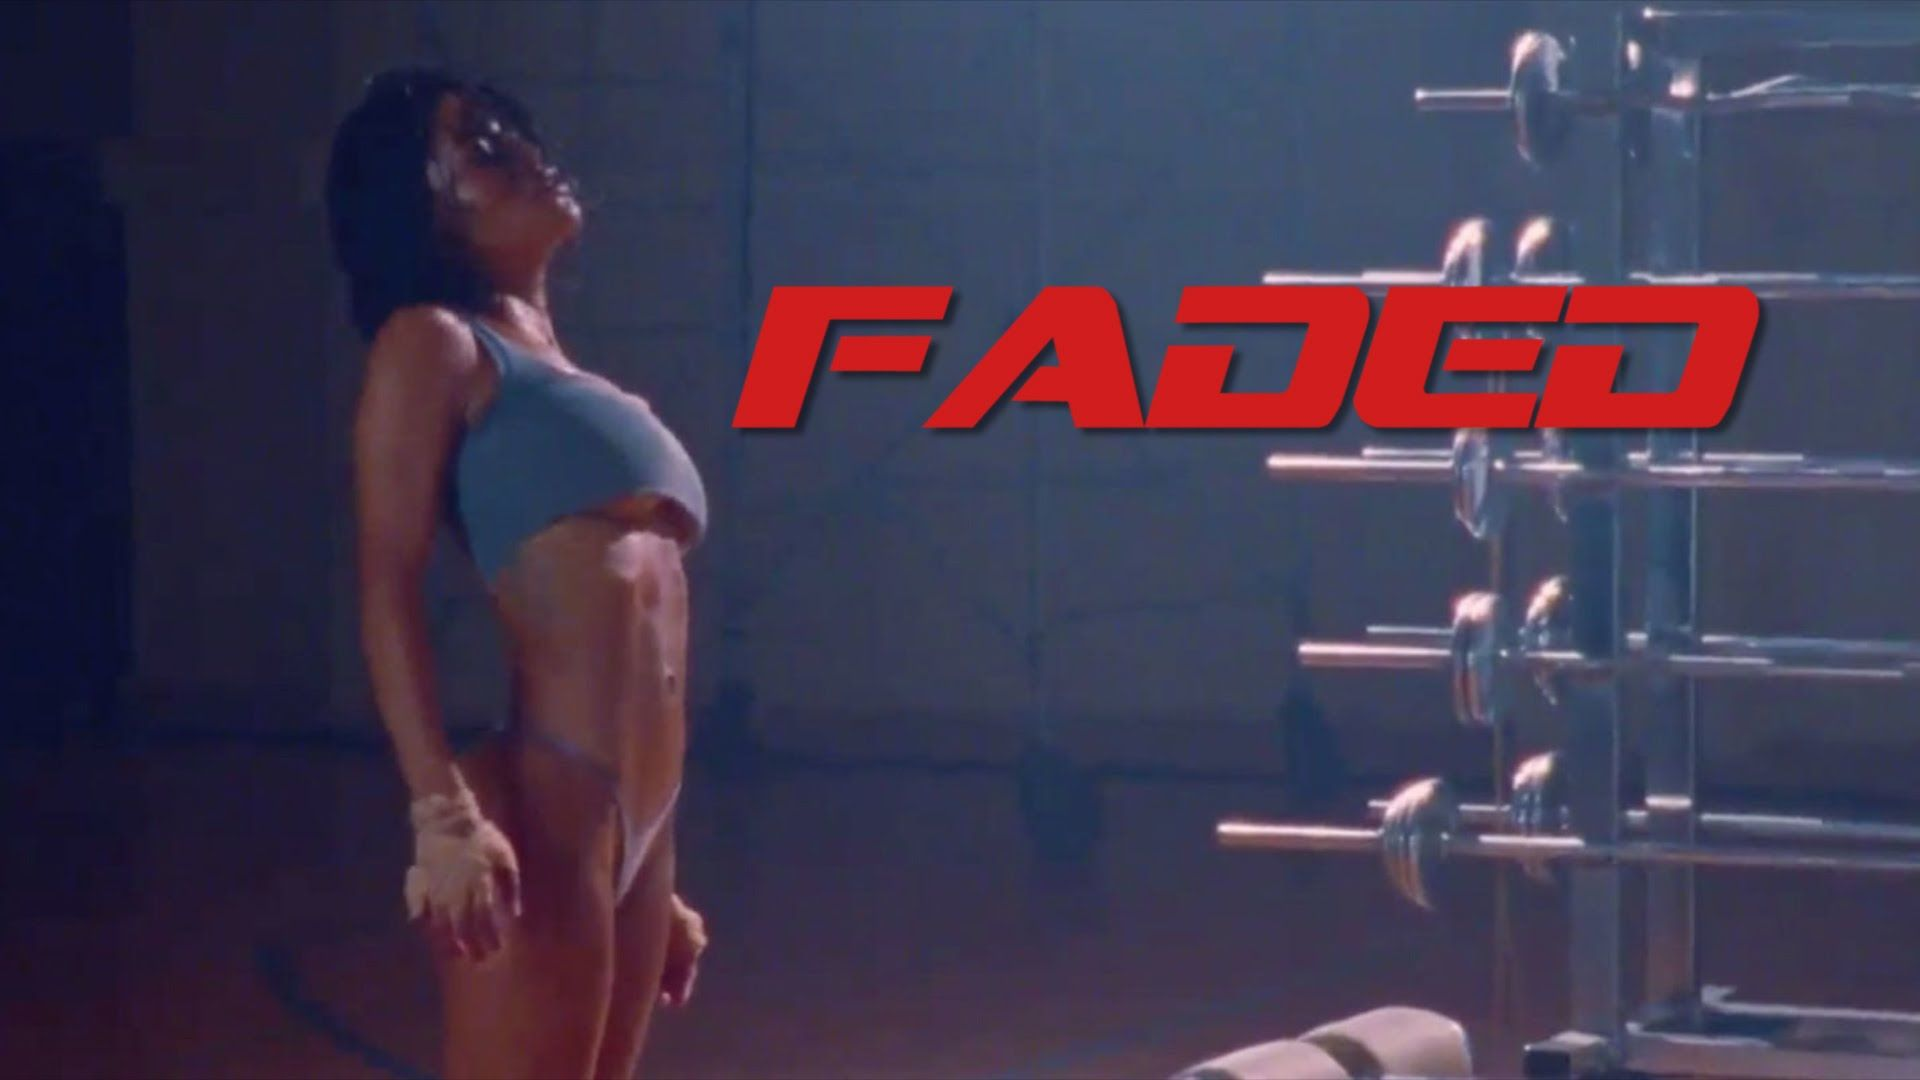 Faded Teyana Taylor Fade Parody Kanye West Music Video Music Videos New Music